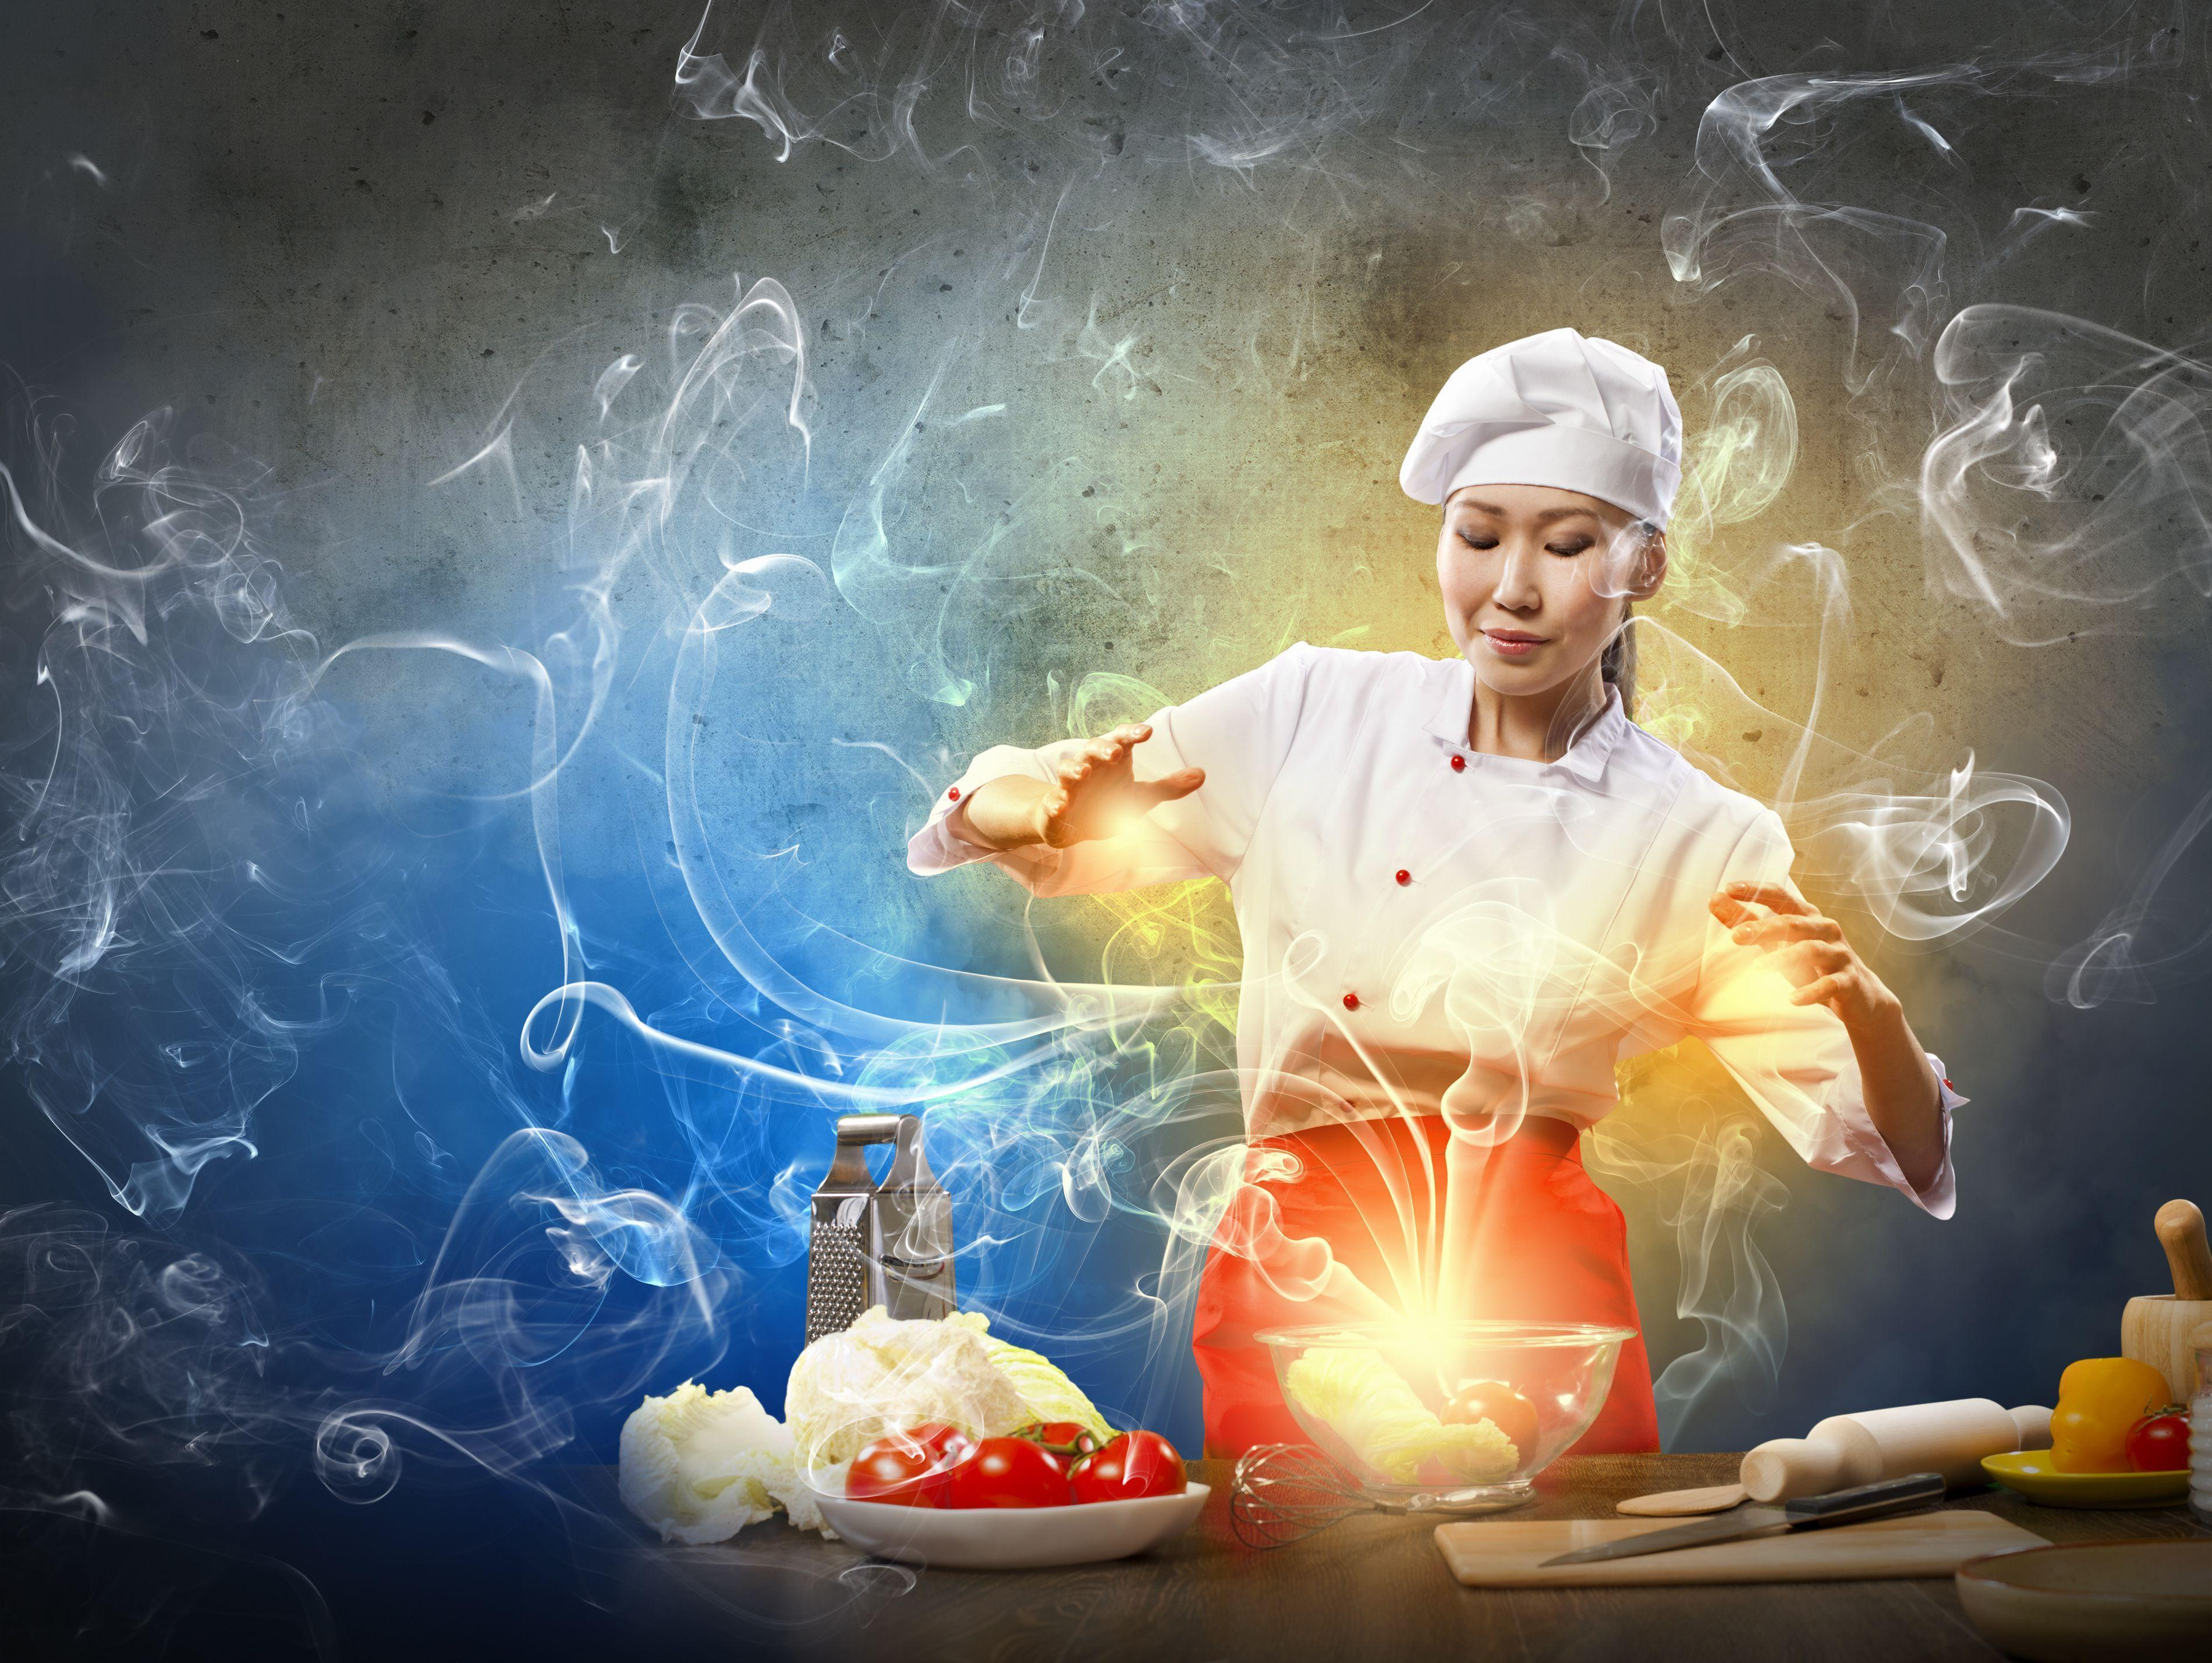 Cooking Wallpapers Wallpaper Cave HD Wallpapers Download Free Images Wallpaper [1000image.com]